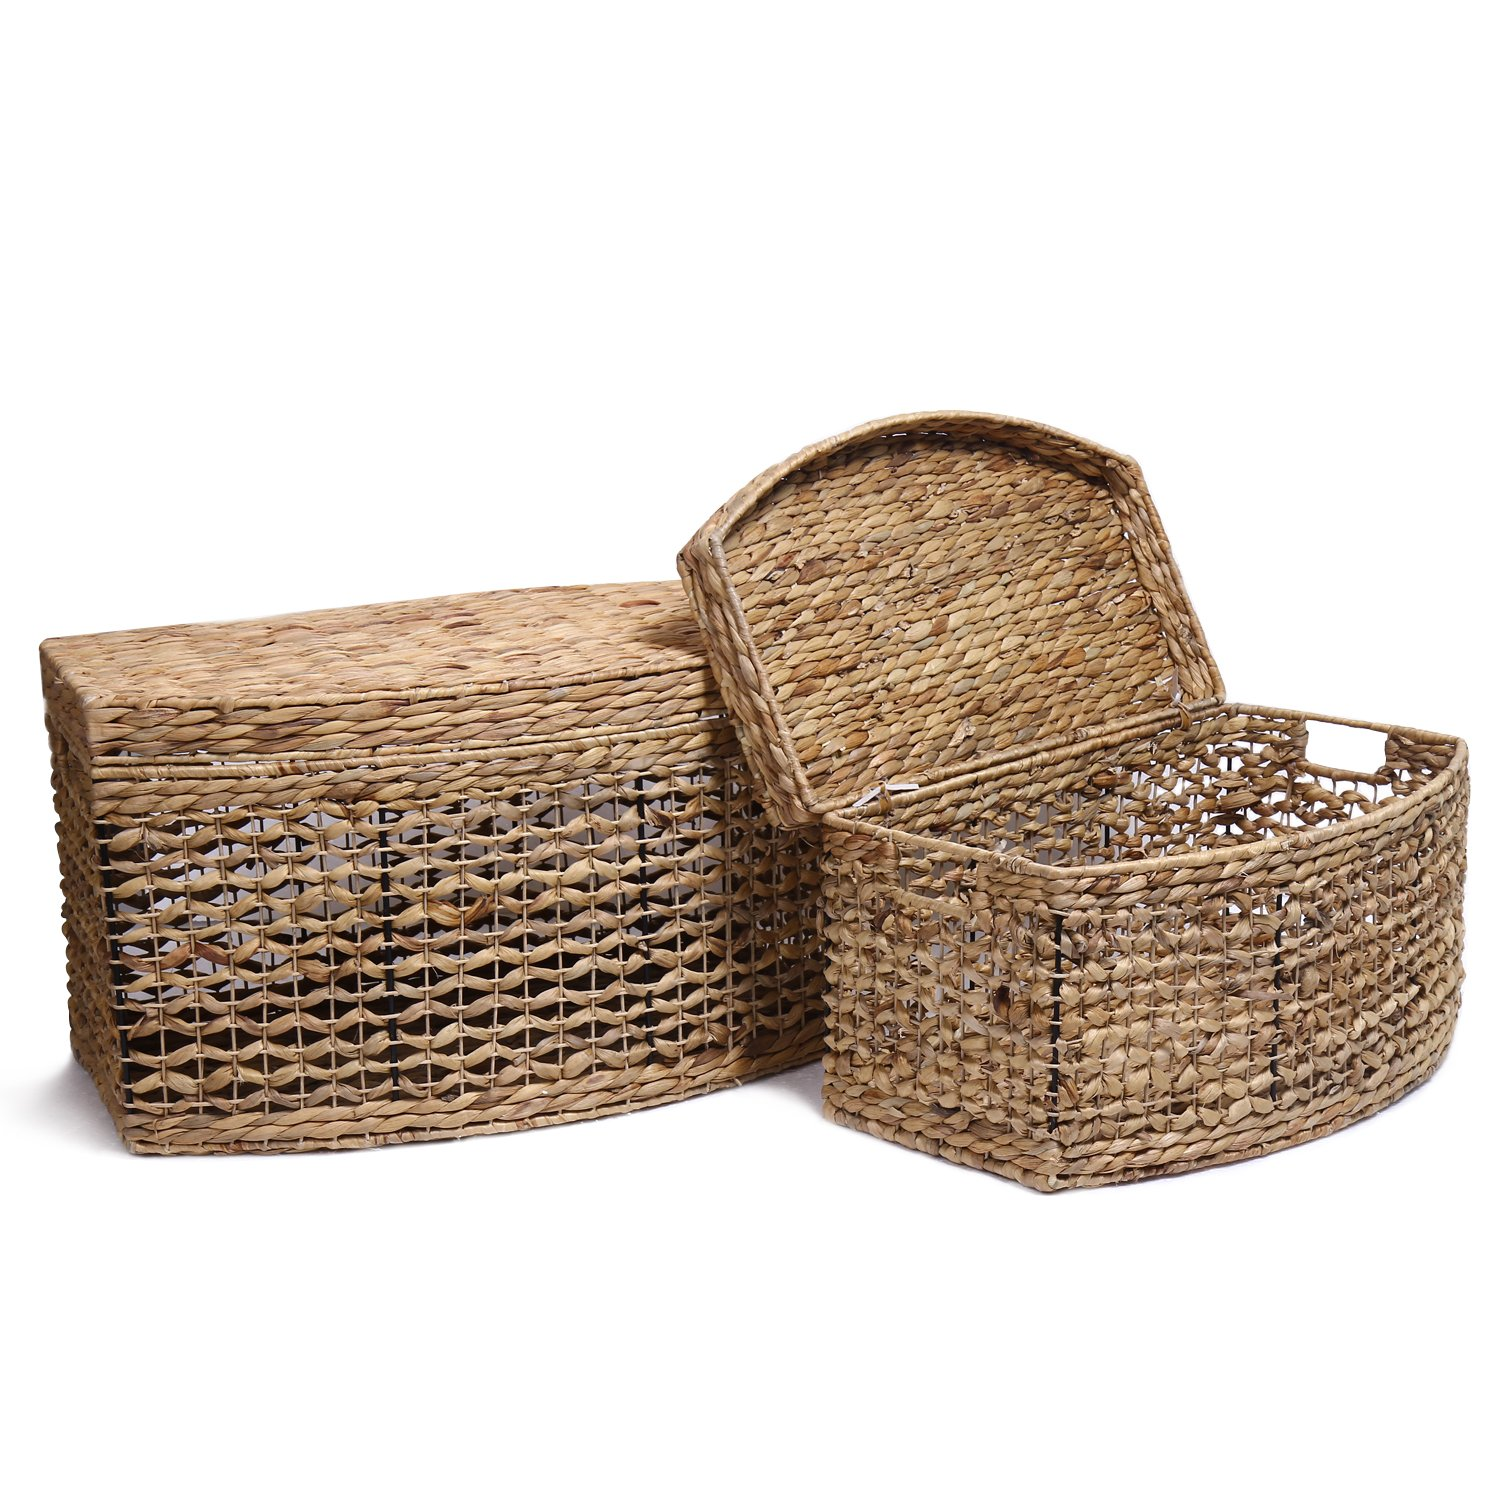 Seagrass Storage Baskets: Adeco Multi-Purpose Seagrass Woven Basket Chest With Lid